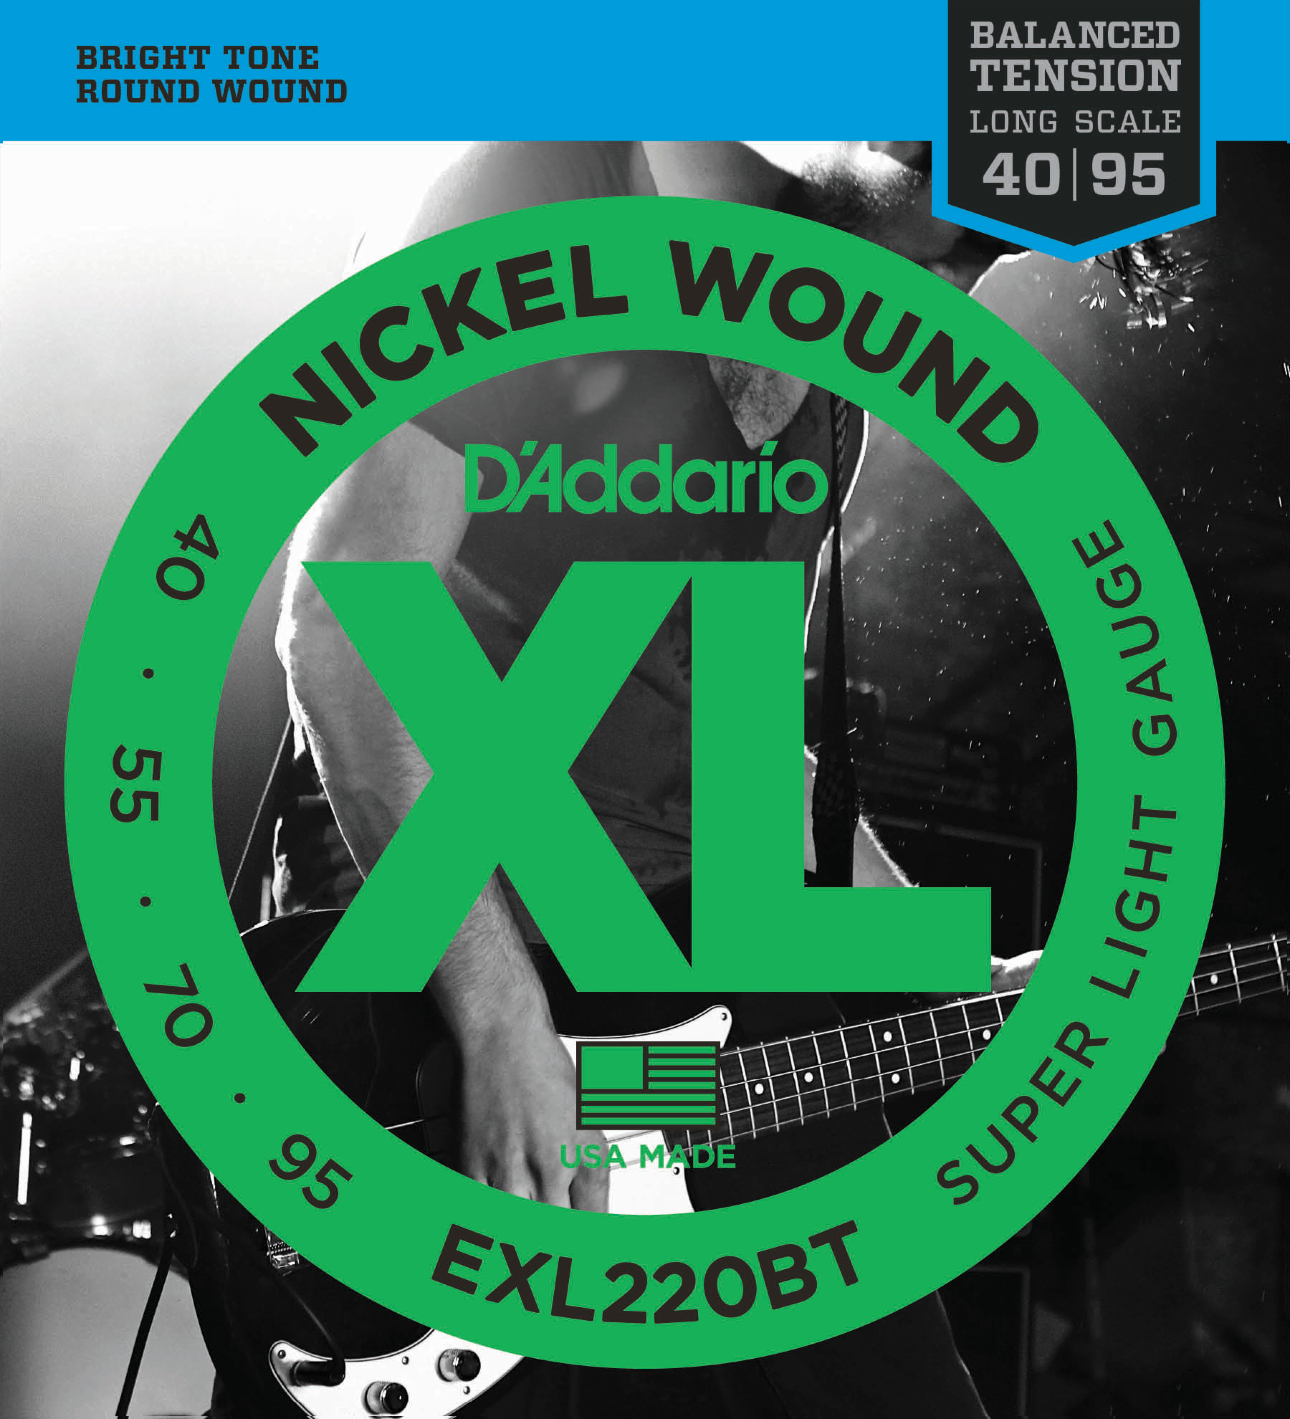 D'Addario EXL220BT Nickel Wound Bass Guitar Strings Balanced Tension Super Light...